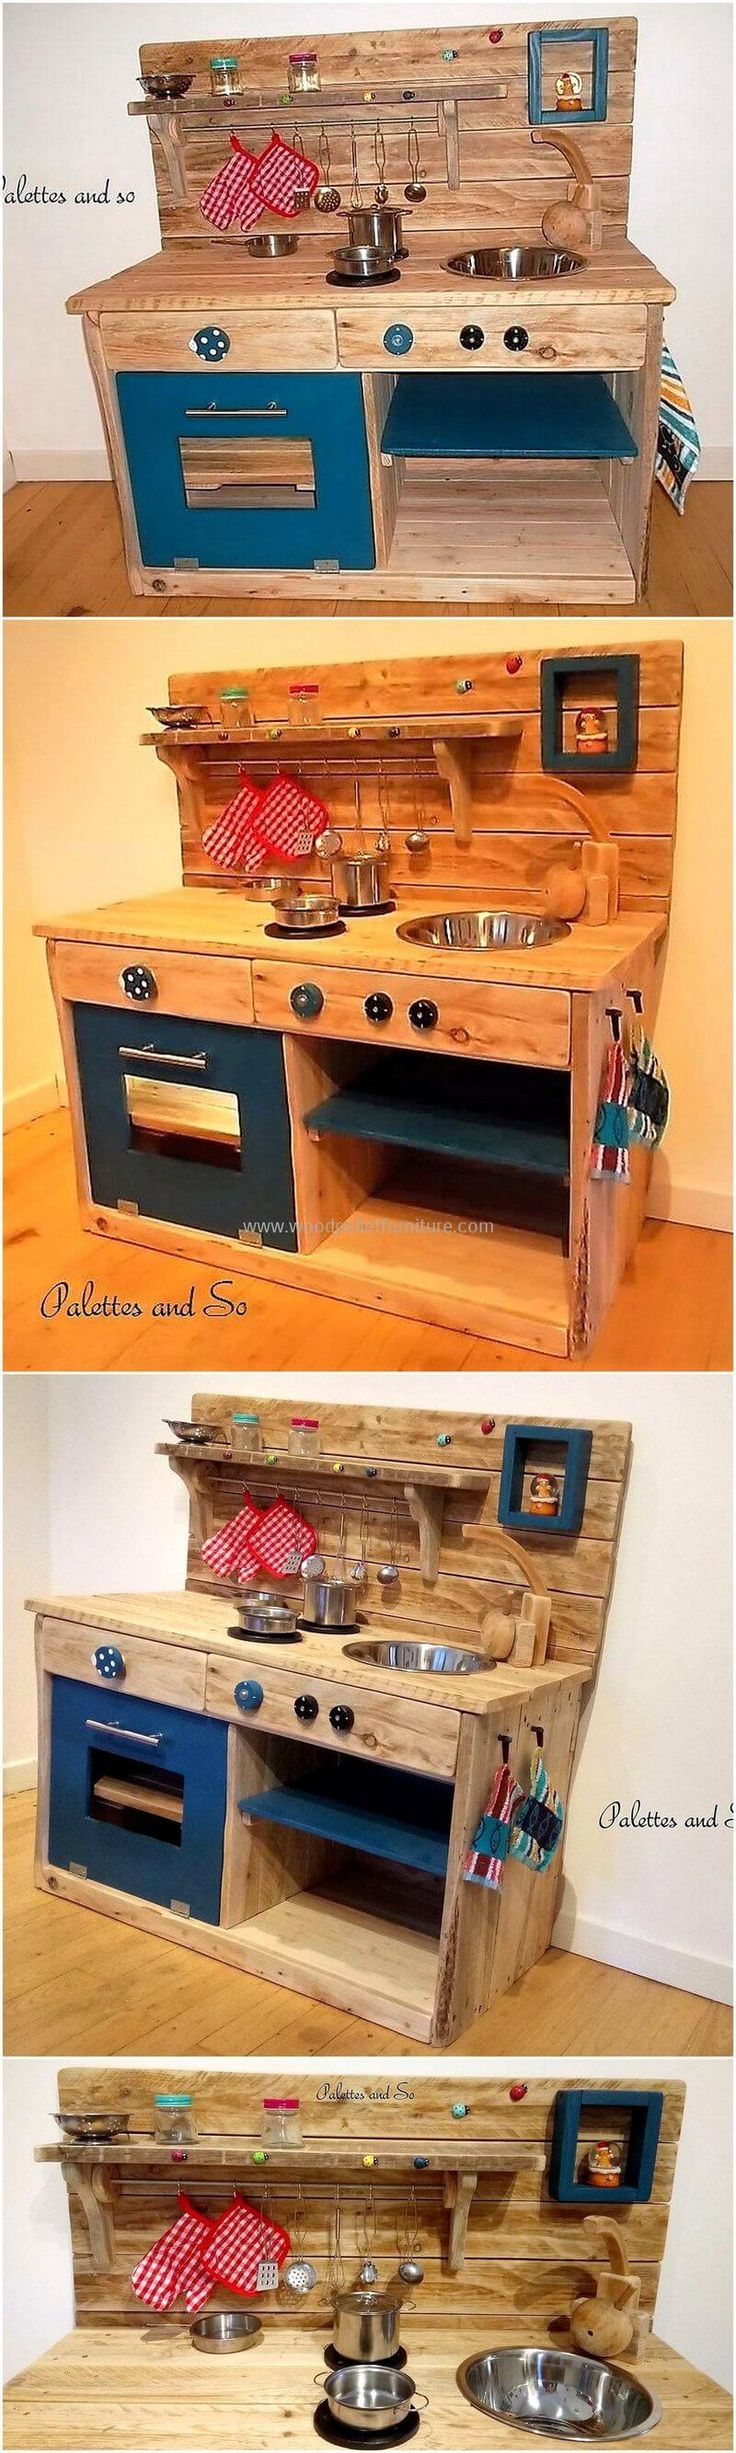 This is a complete wood pallets kid's kitchen mud created with up cycled pallets wood. This is the best gift for your little princess on her birthday if she really likes to work and play in kitchen. This pallets made kitchen mud has a large headboard crafted smartly so use as a shelving rack.